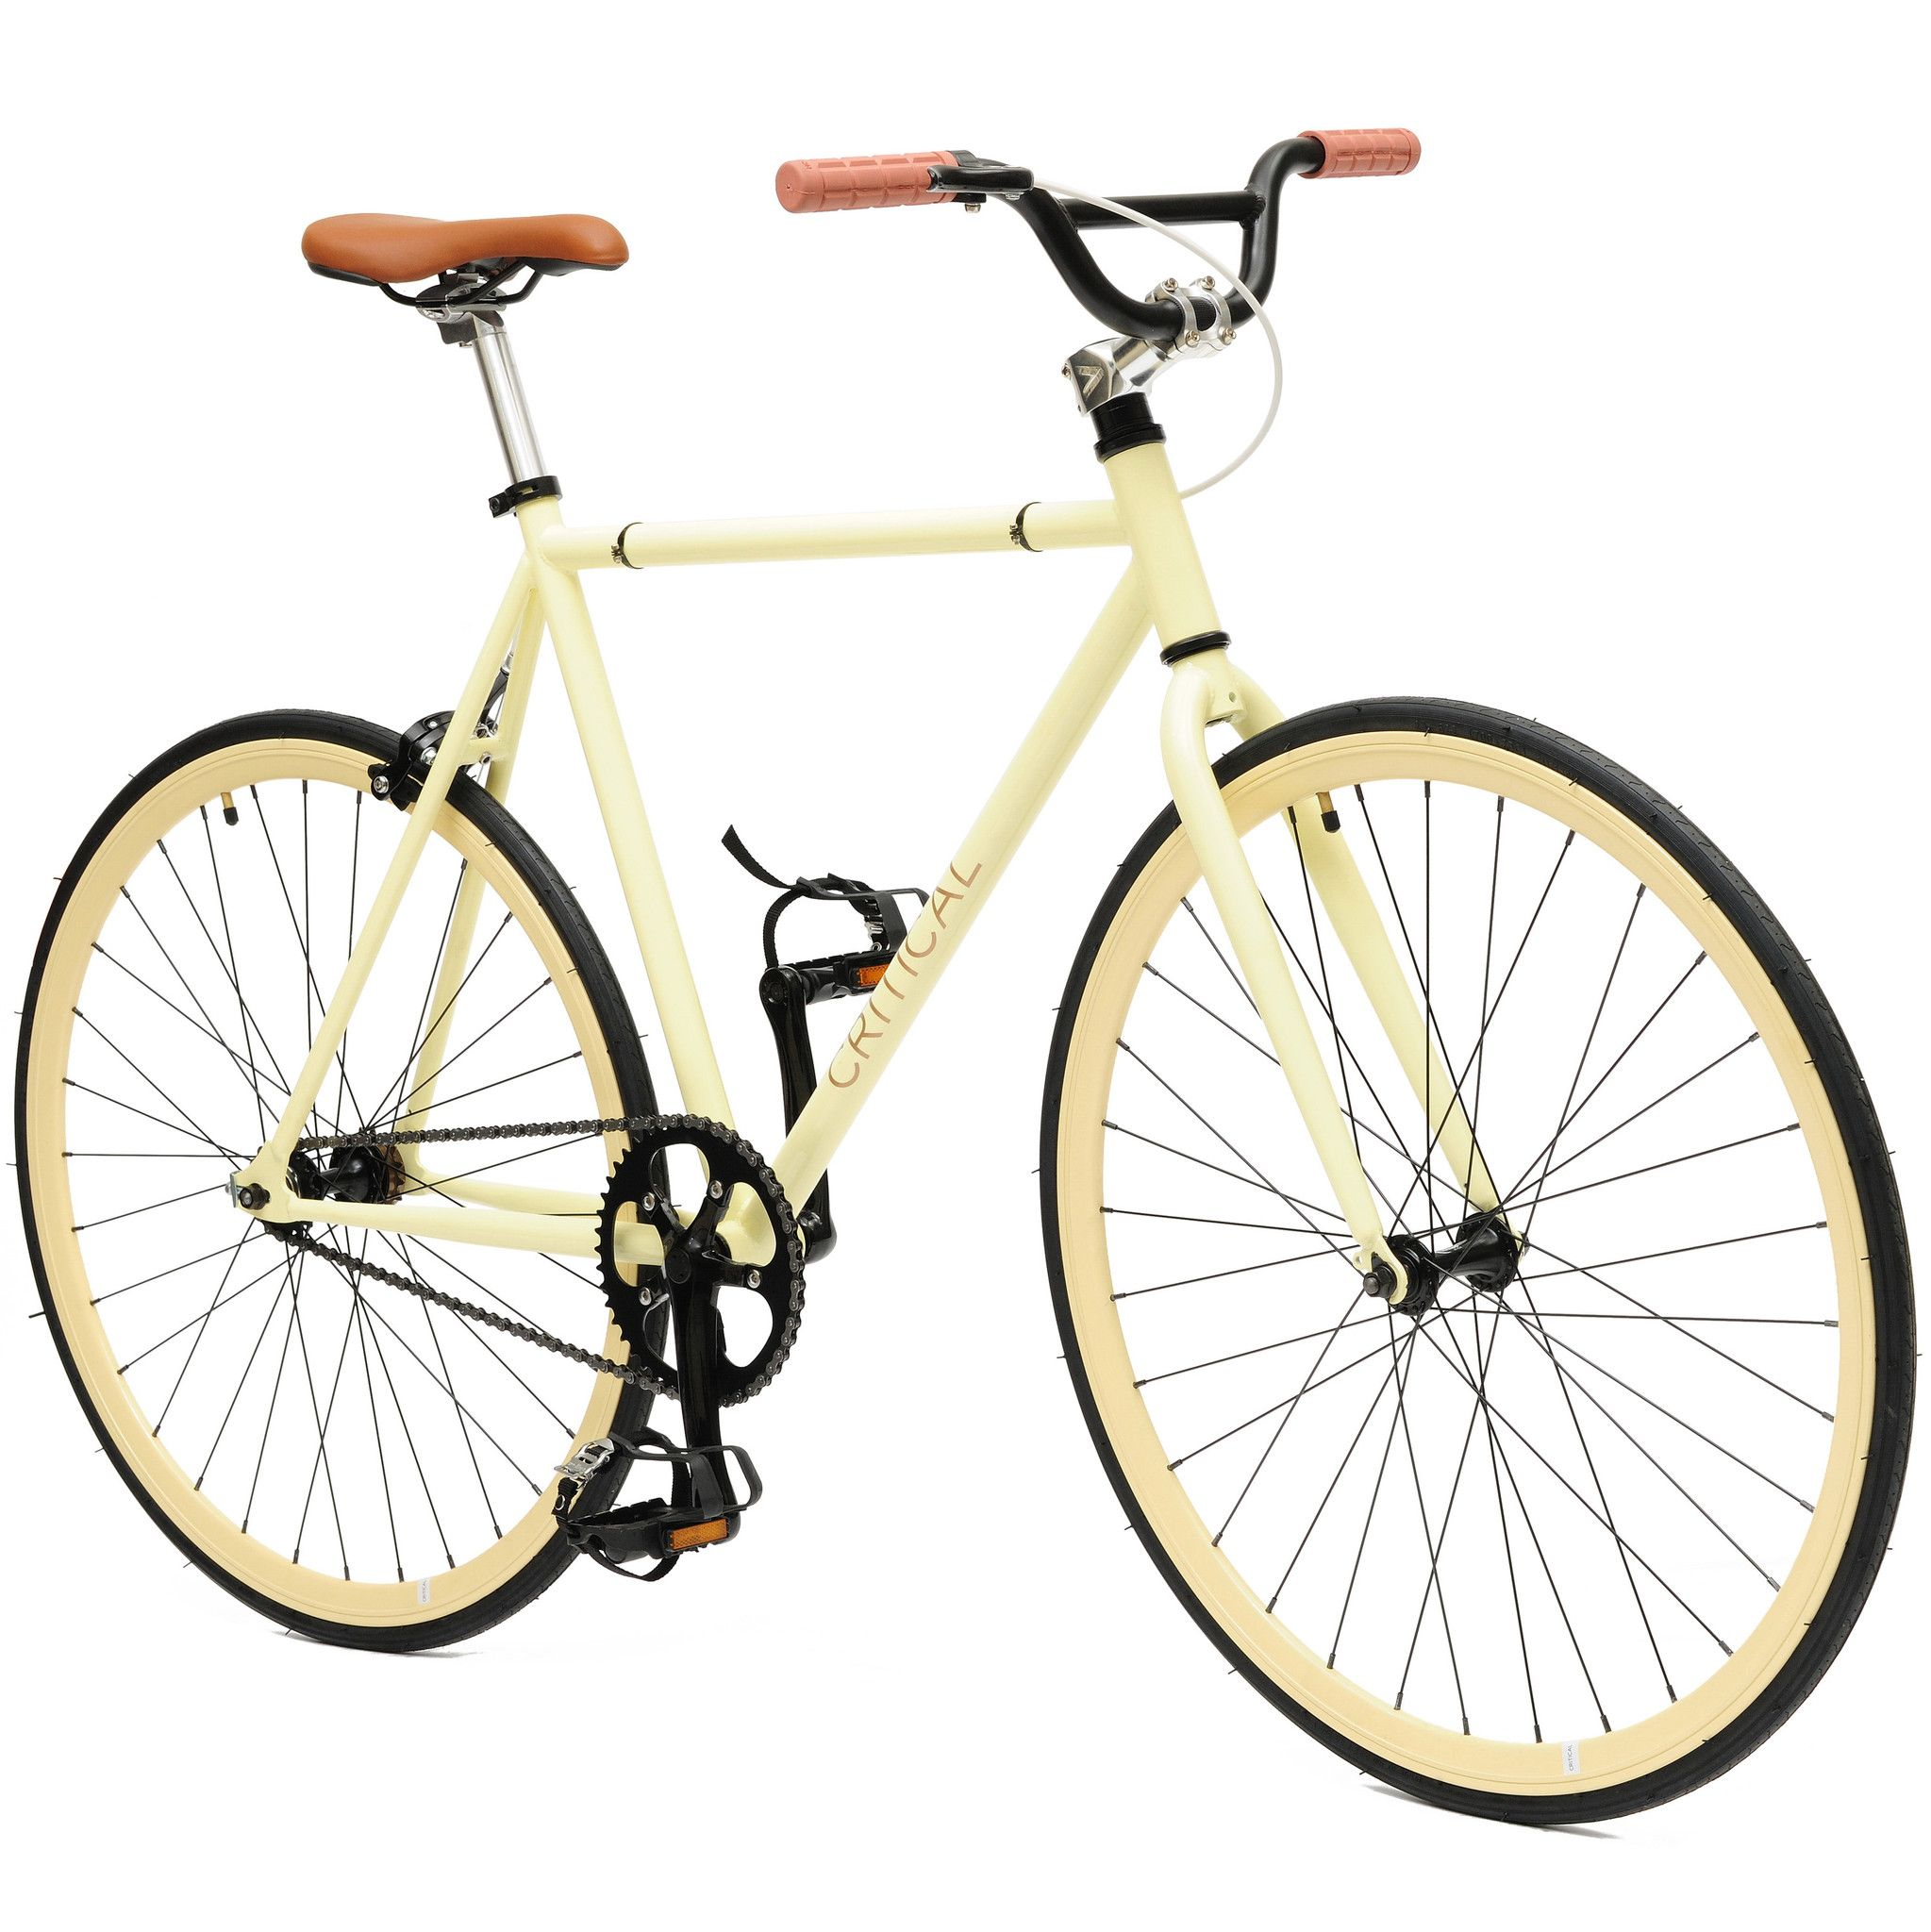 Fixed Gear Single Speed Bike With Bmx Handlebars Coveted